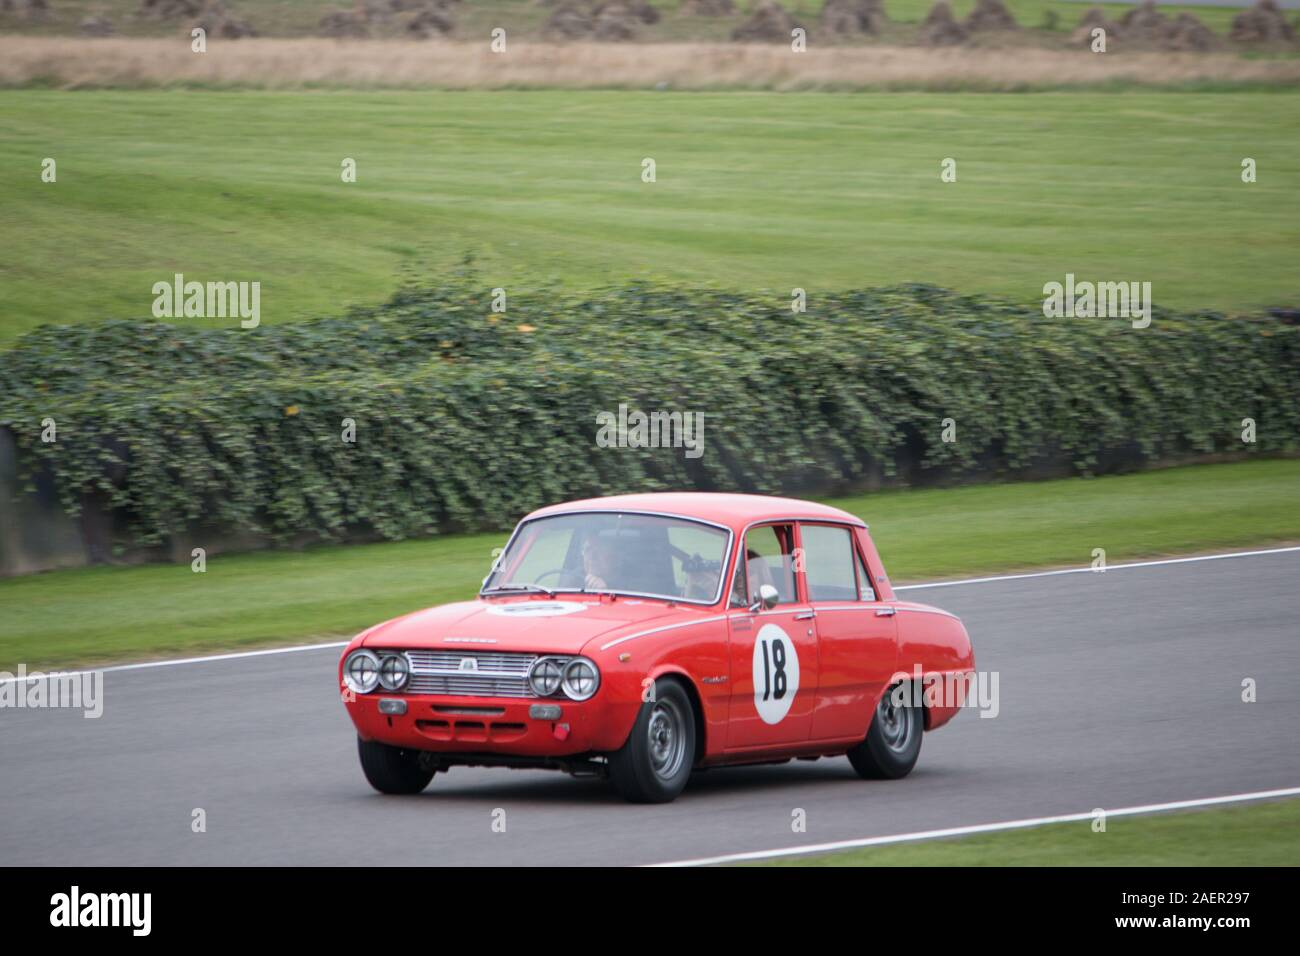 Goodwood Motor racing Chichester West Sussex Stock Photo